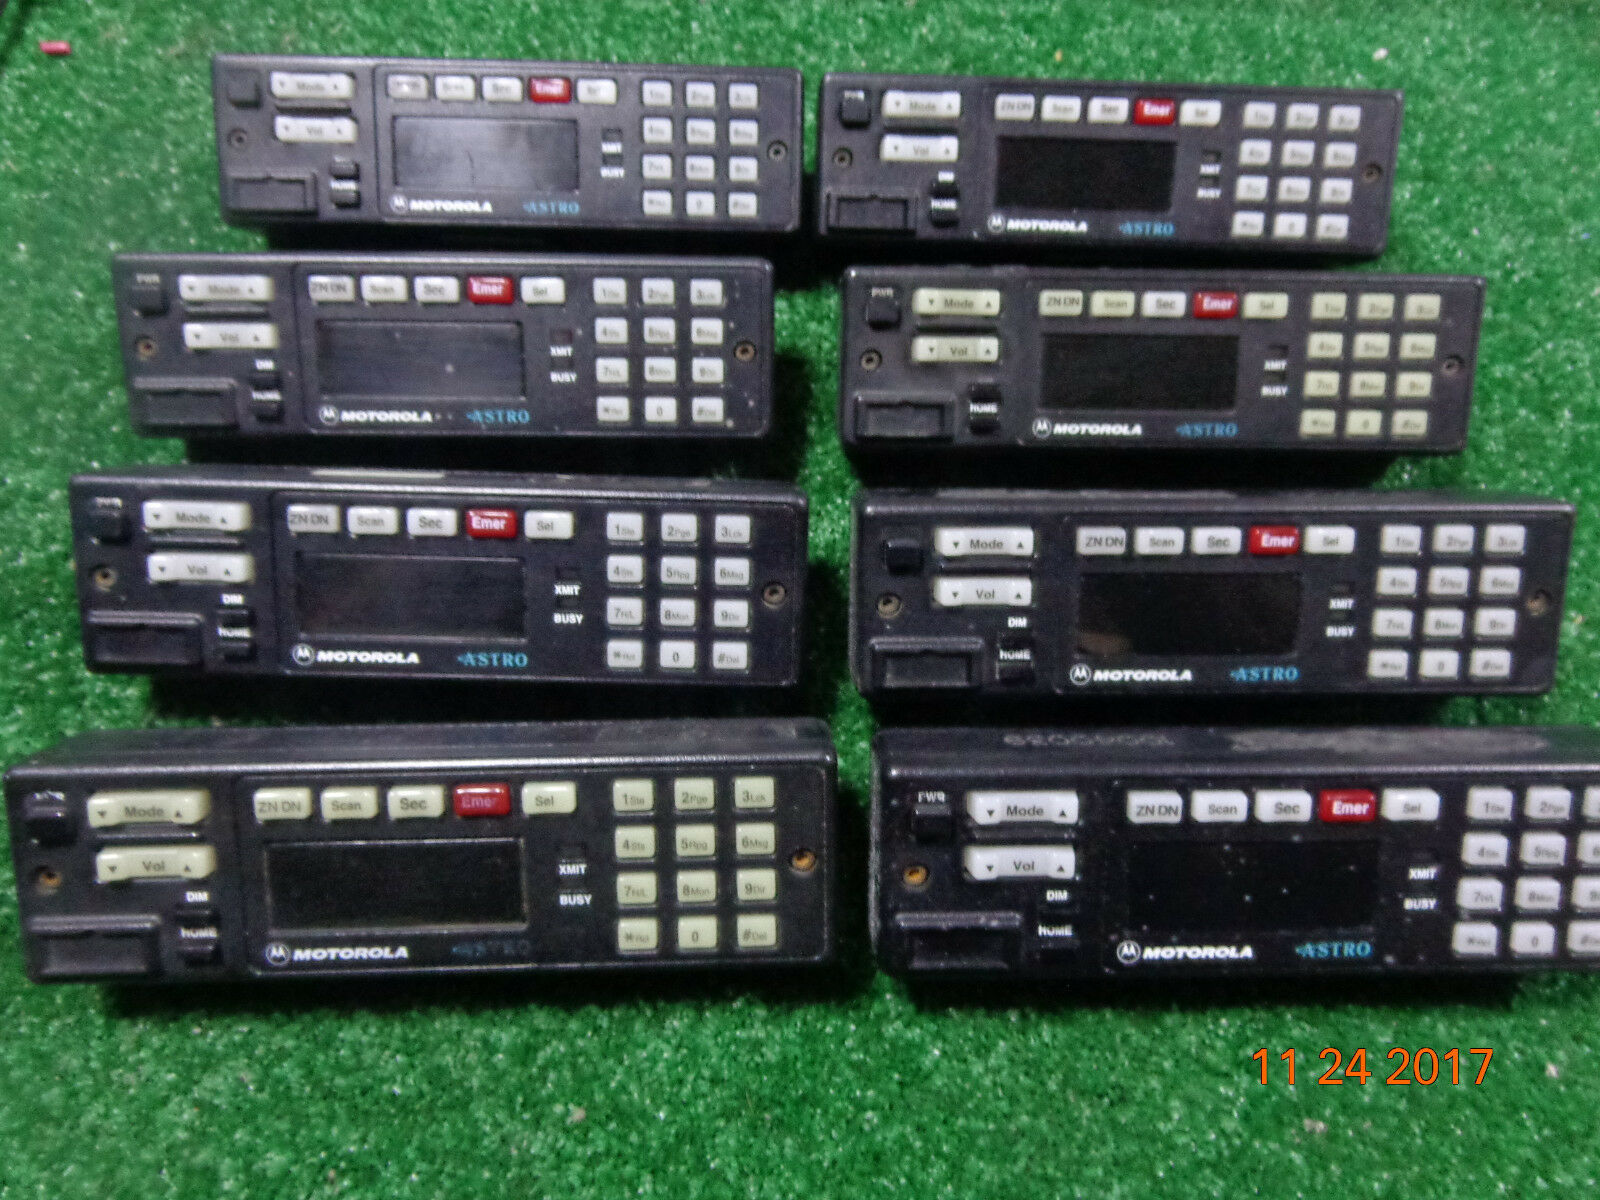 Motorola Spectra ASTRO VHF UHF Remote Mount Radio Control Head HLN6432D-A LOT 8. Available Now for 199.95